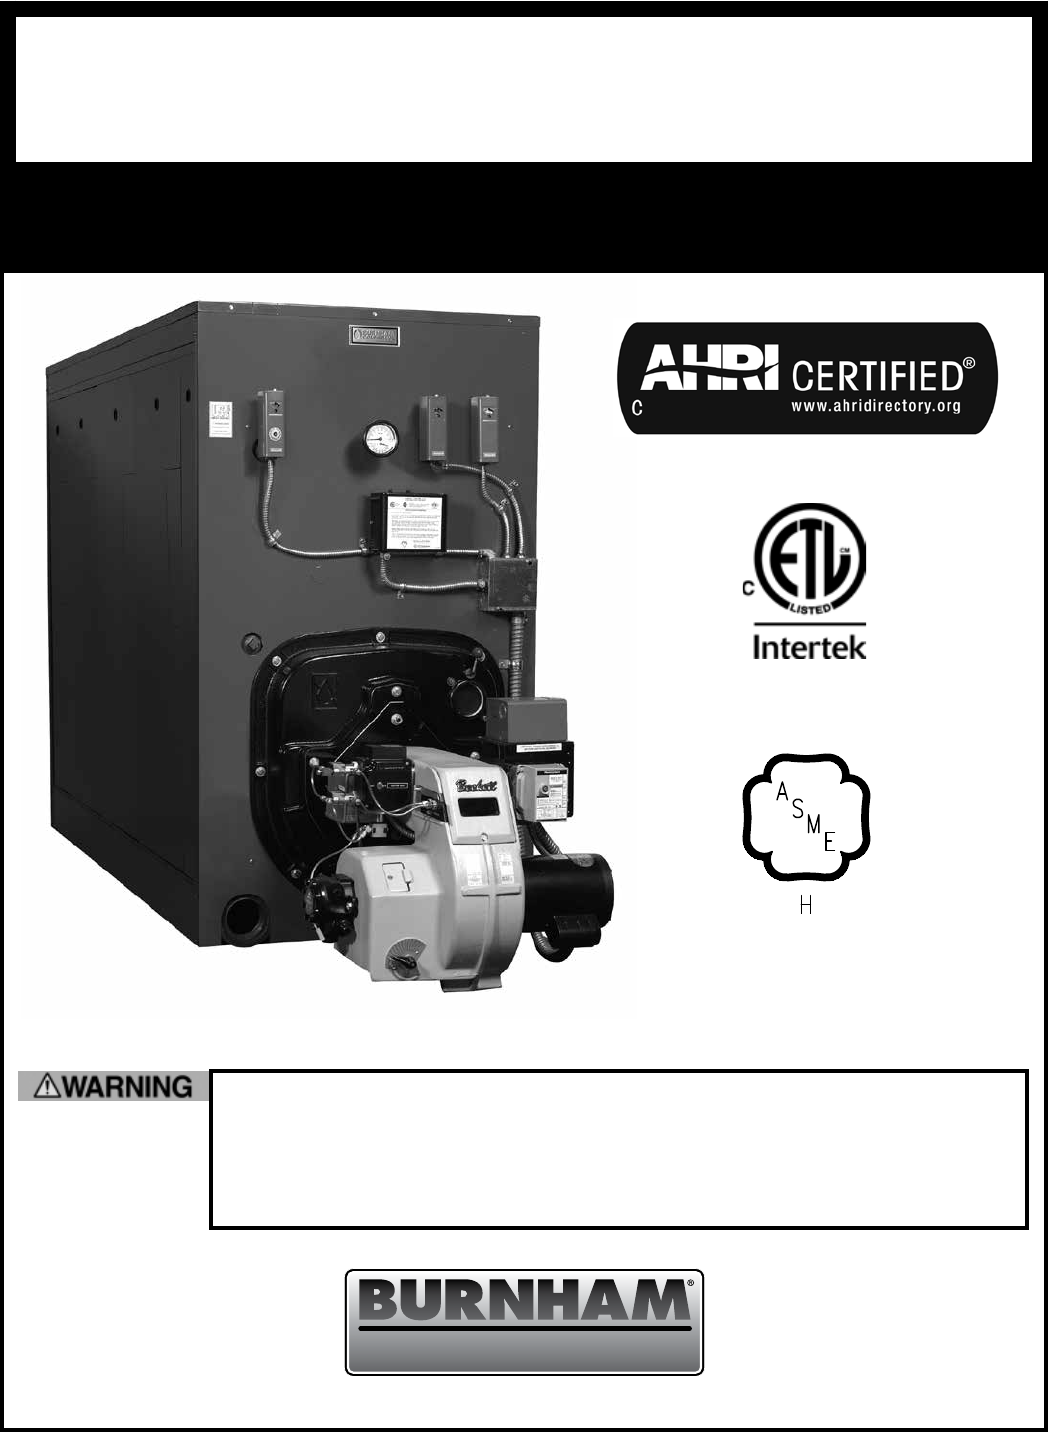 Burnham V9A Boiler Installation And Operation Manual